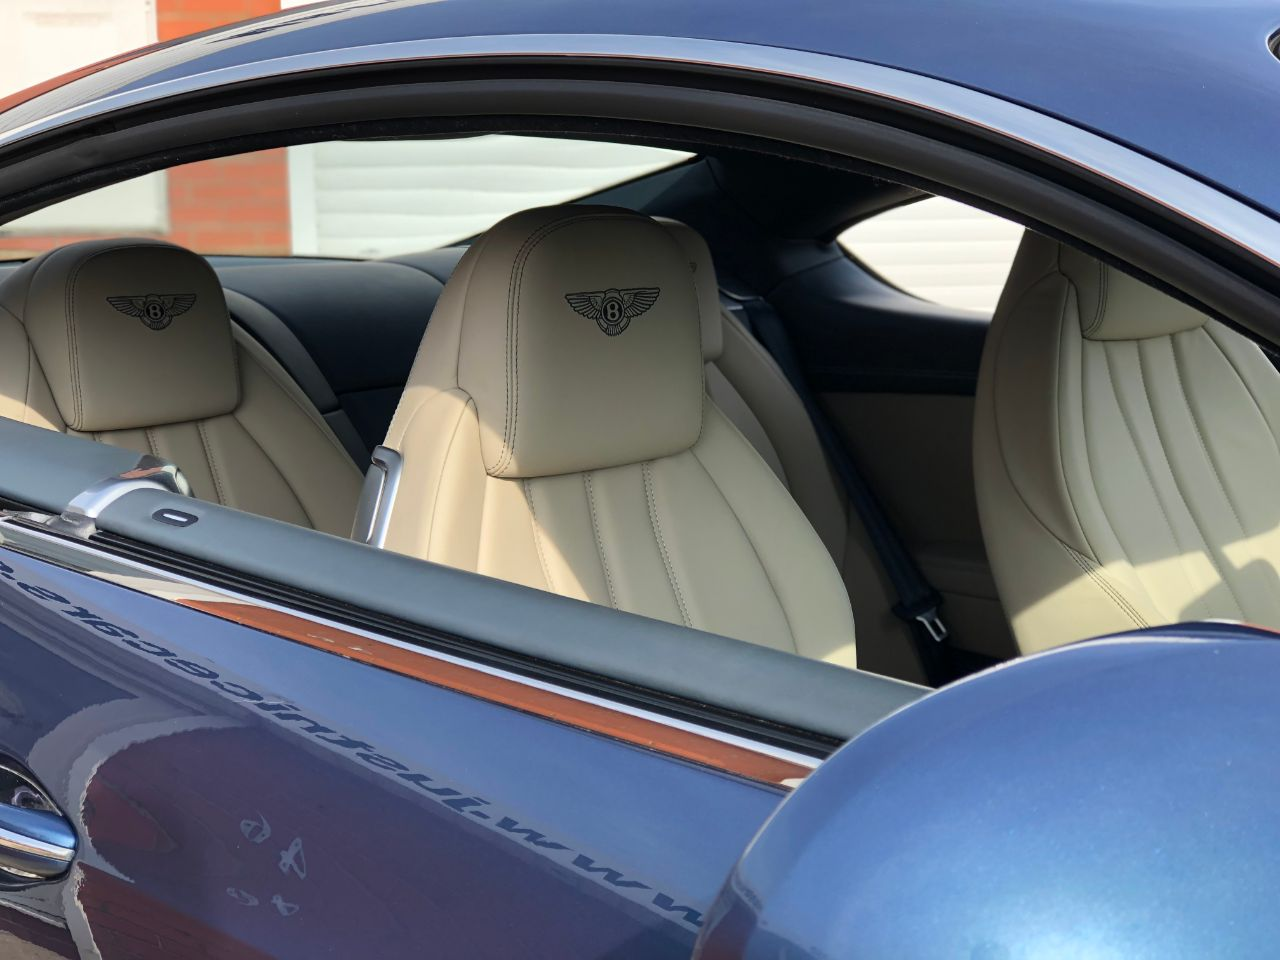 Bentley Continental GT 4.0 V8 2dr Auto 500BHP Coupe Petrol Crystal Blue Metallic